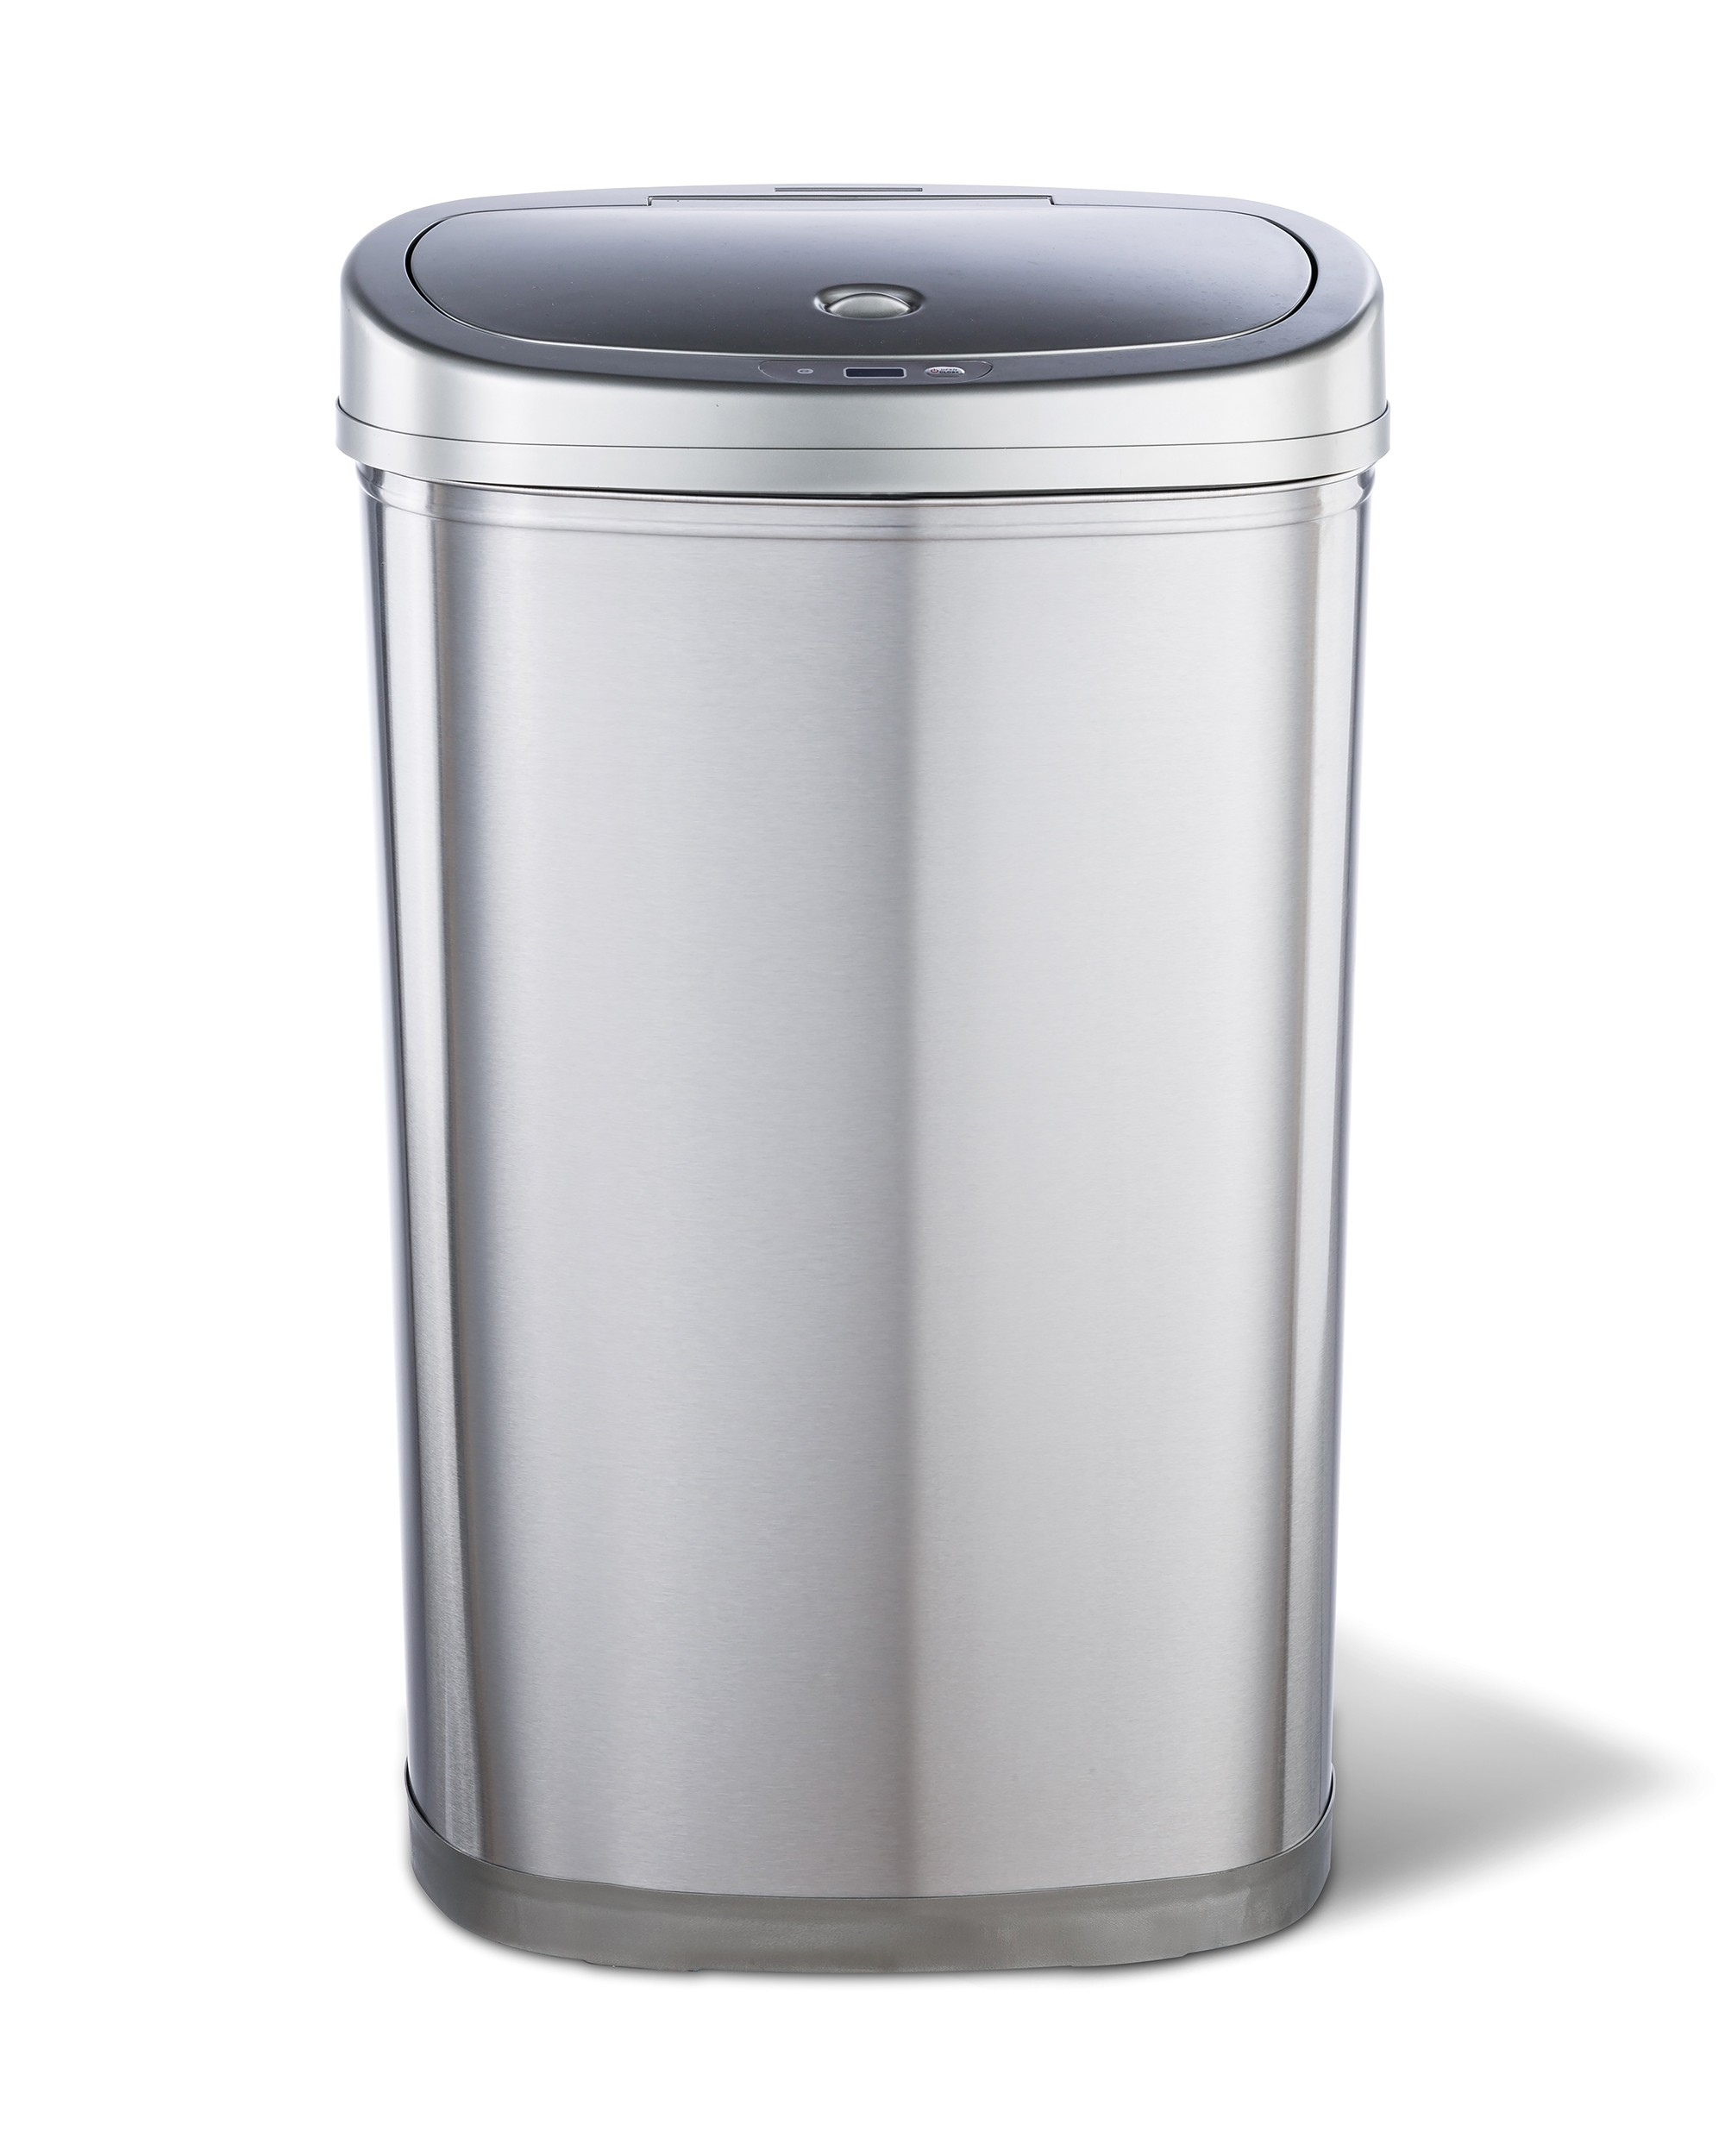 50 Litre Smart Autobin Oblong stainless steel kitchen waste bin with self-opening and closing lid